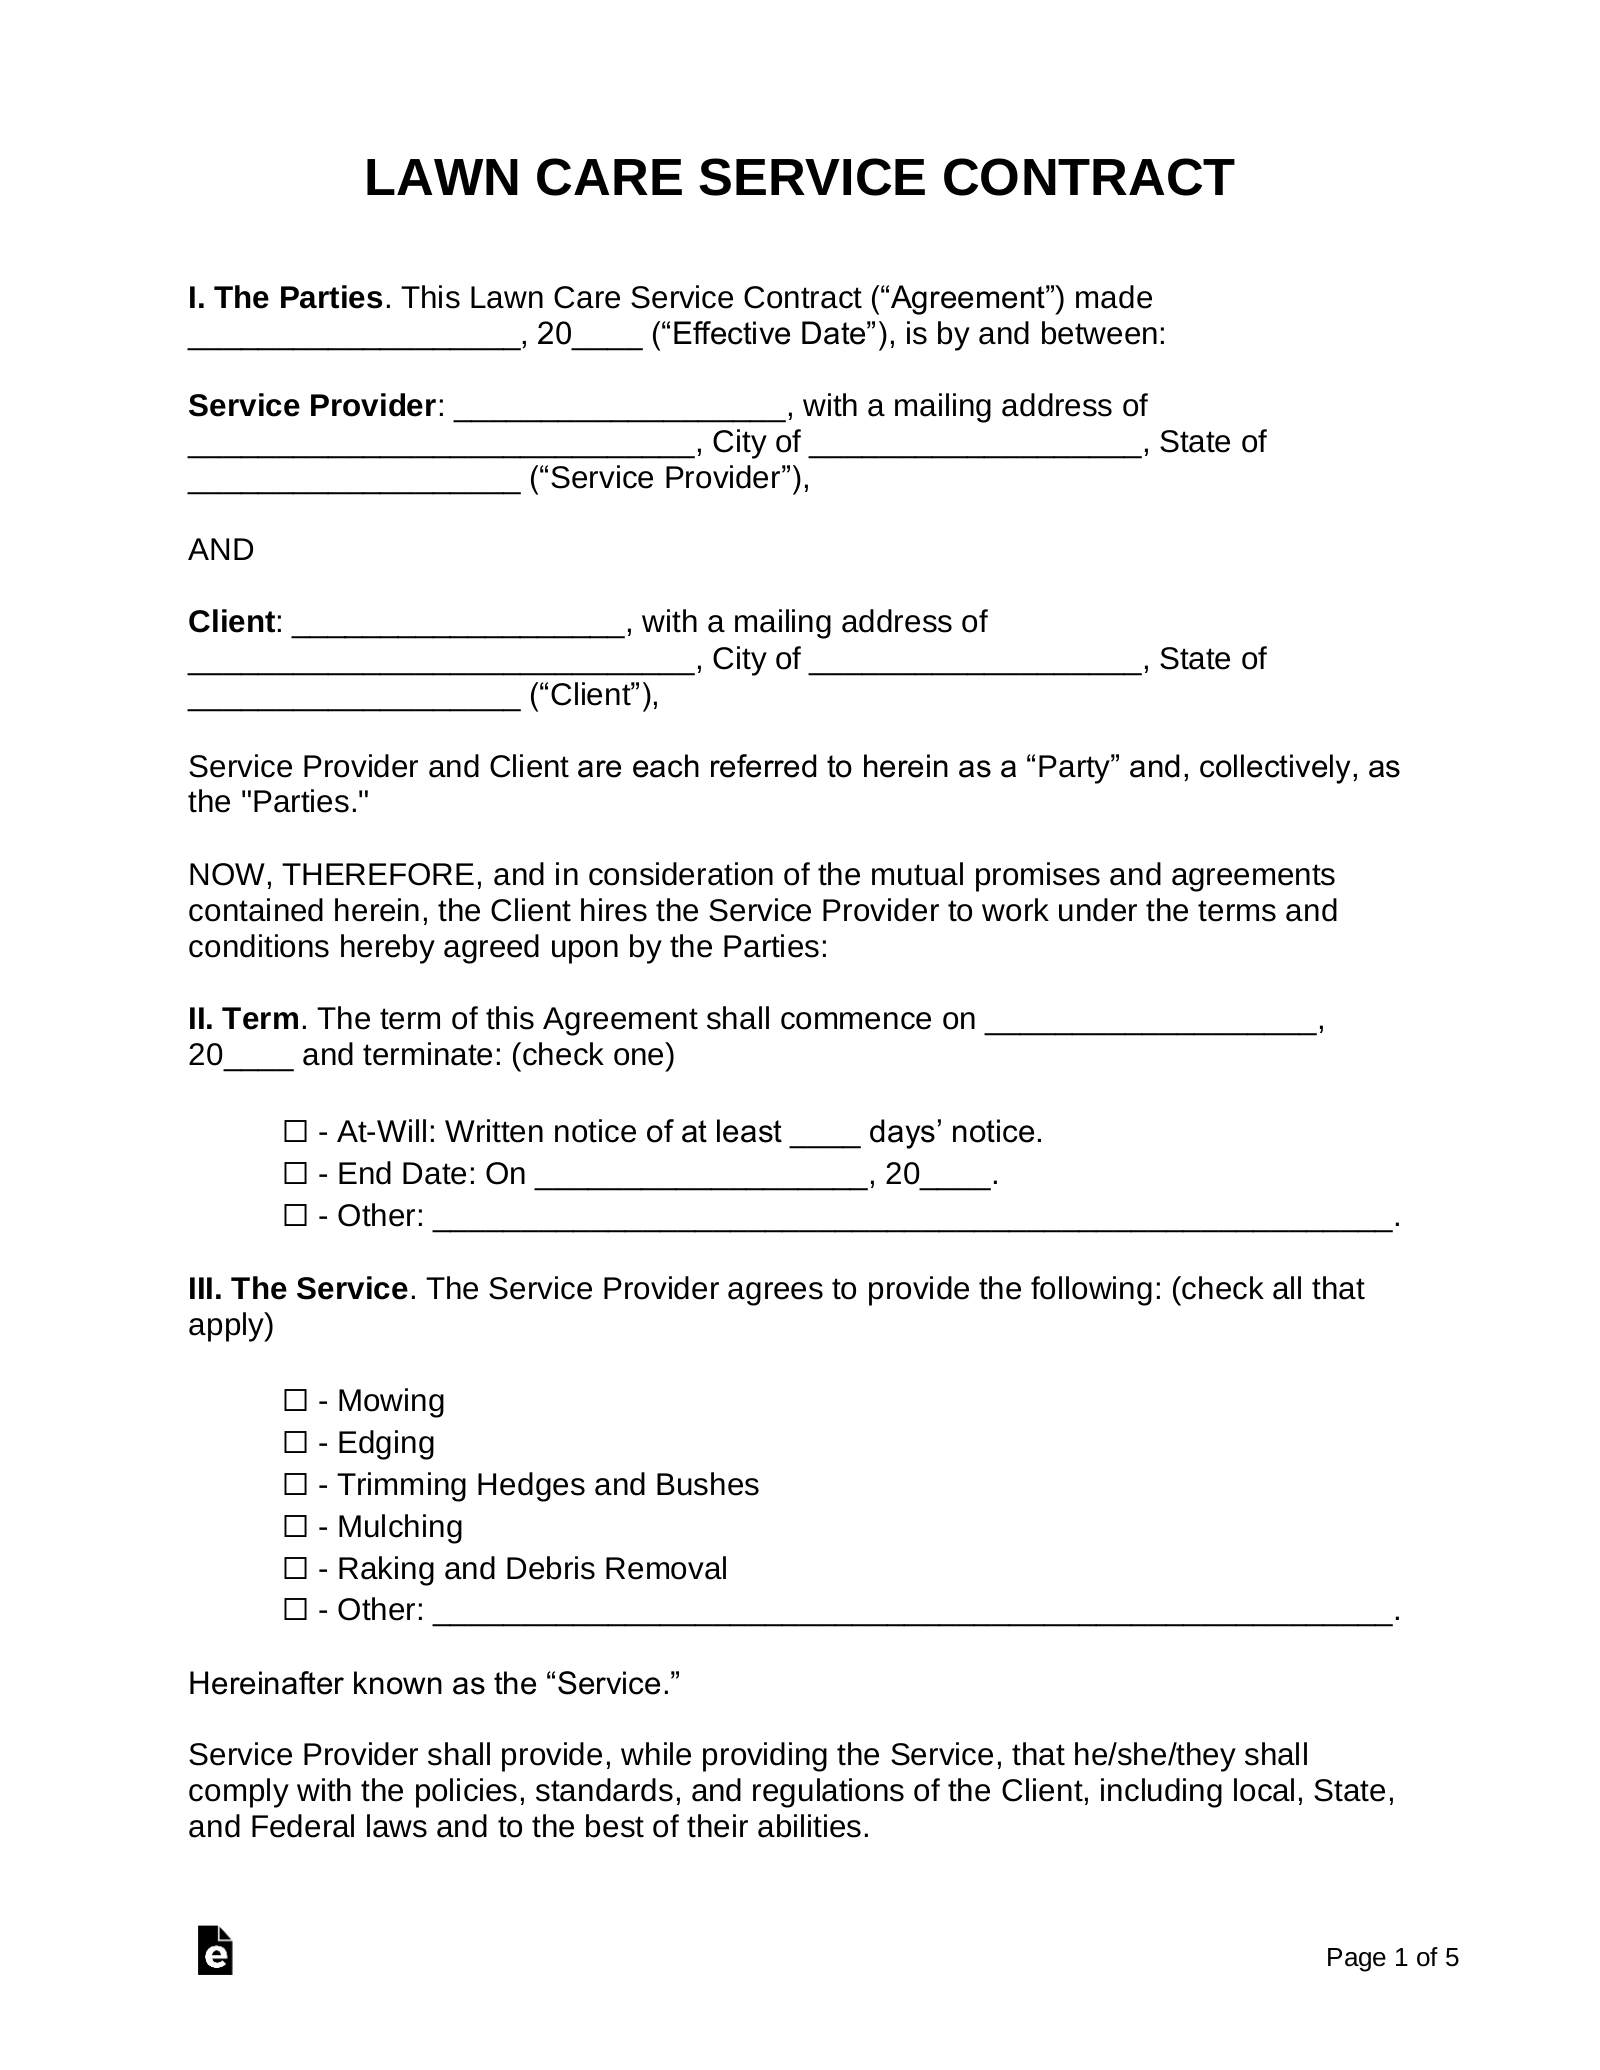 free lawn care contract template - samples